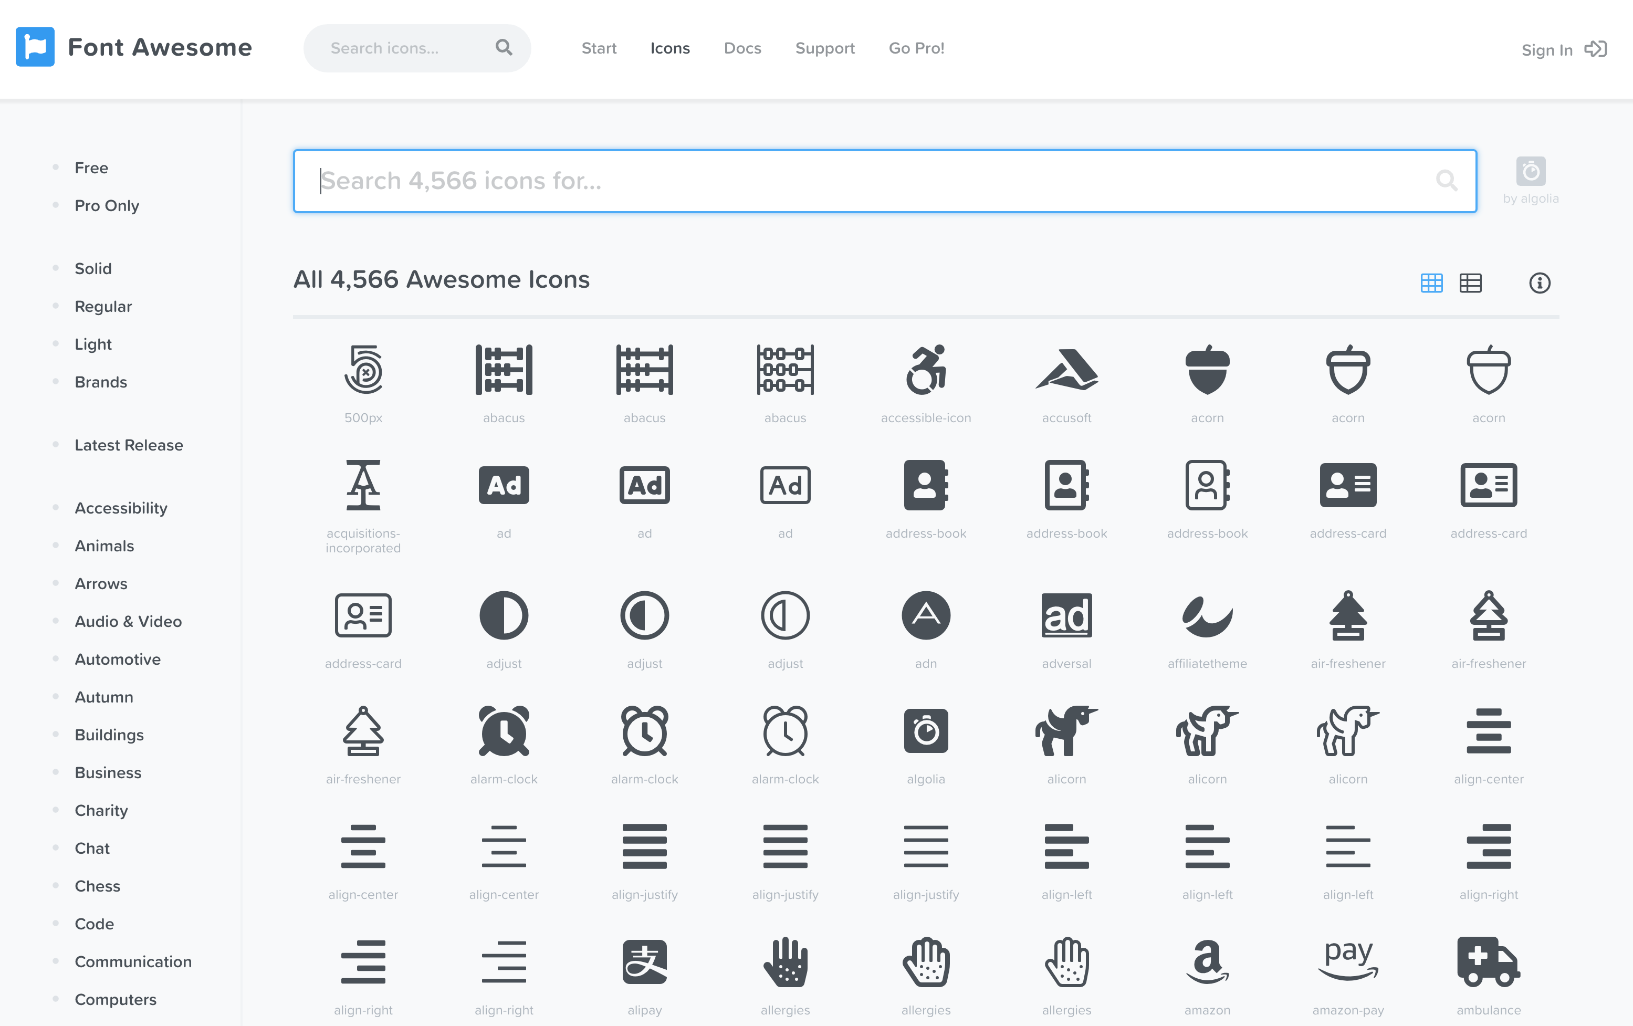 Font Awesome iconen